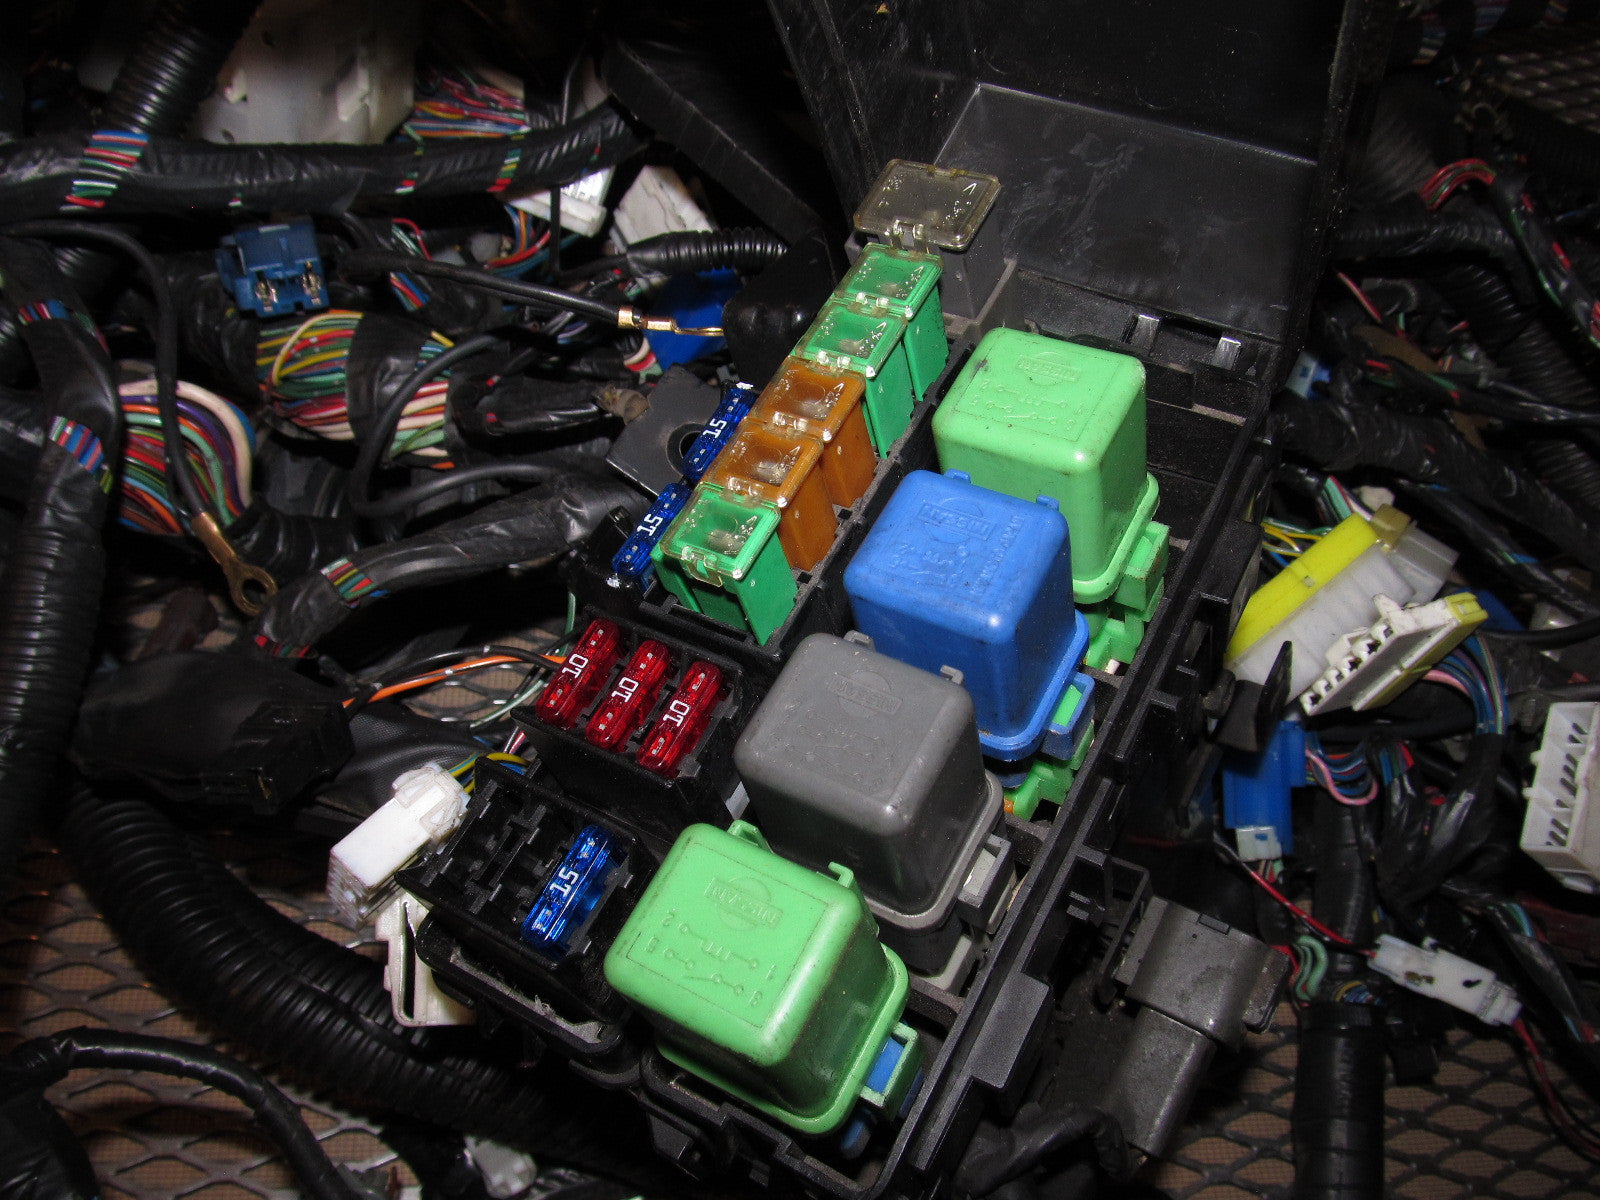 240sx battery fuse box 240sx fuse box wiring - wiring diagram negative battery fuse box nissan 240sx #1